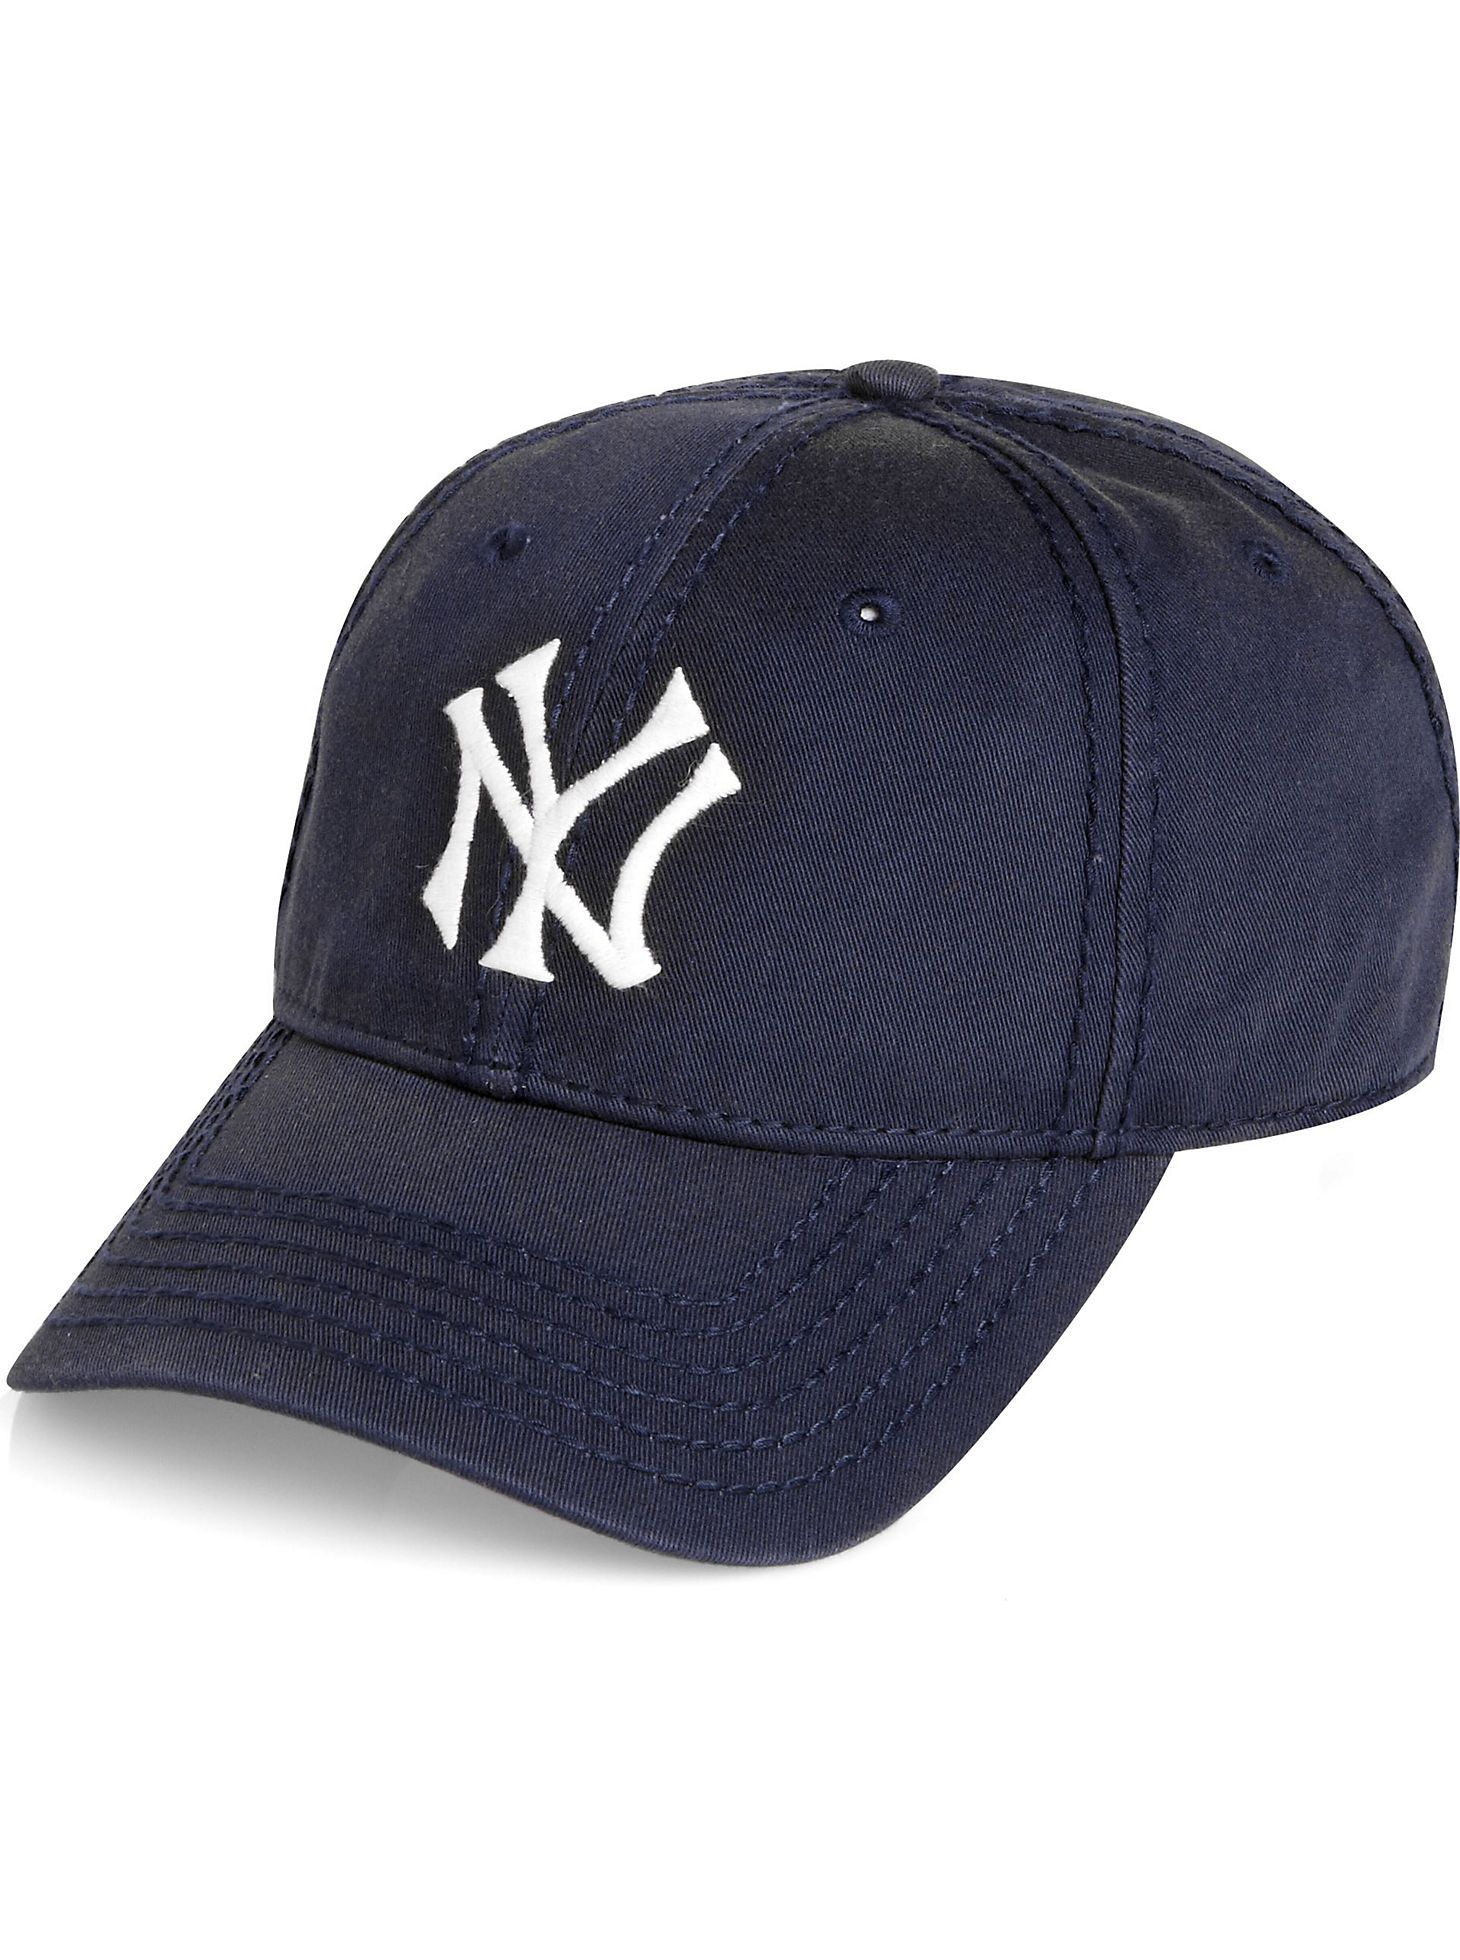 c6adf05790e Accessories - American Needle Navy New York Yankees Vintage Baseball Hat -  Men s Wearhouse